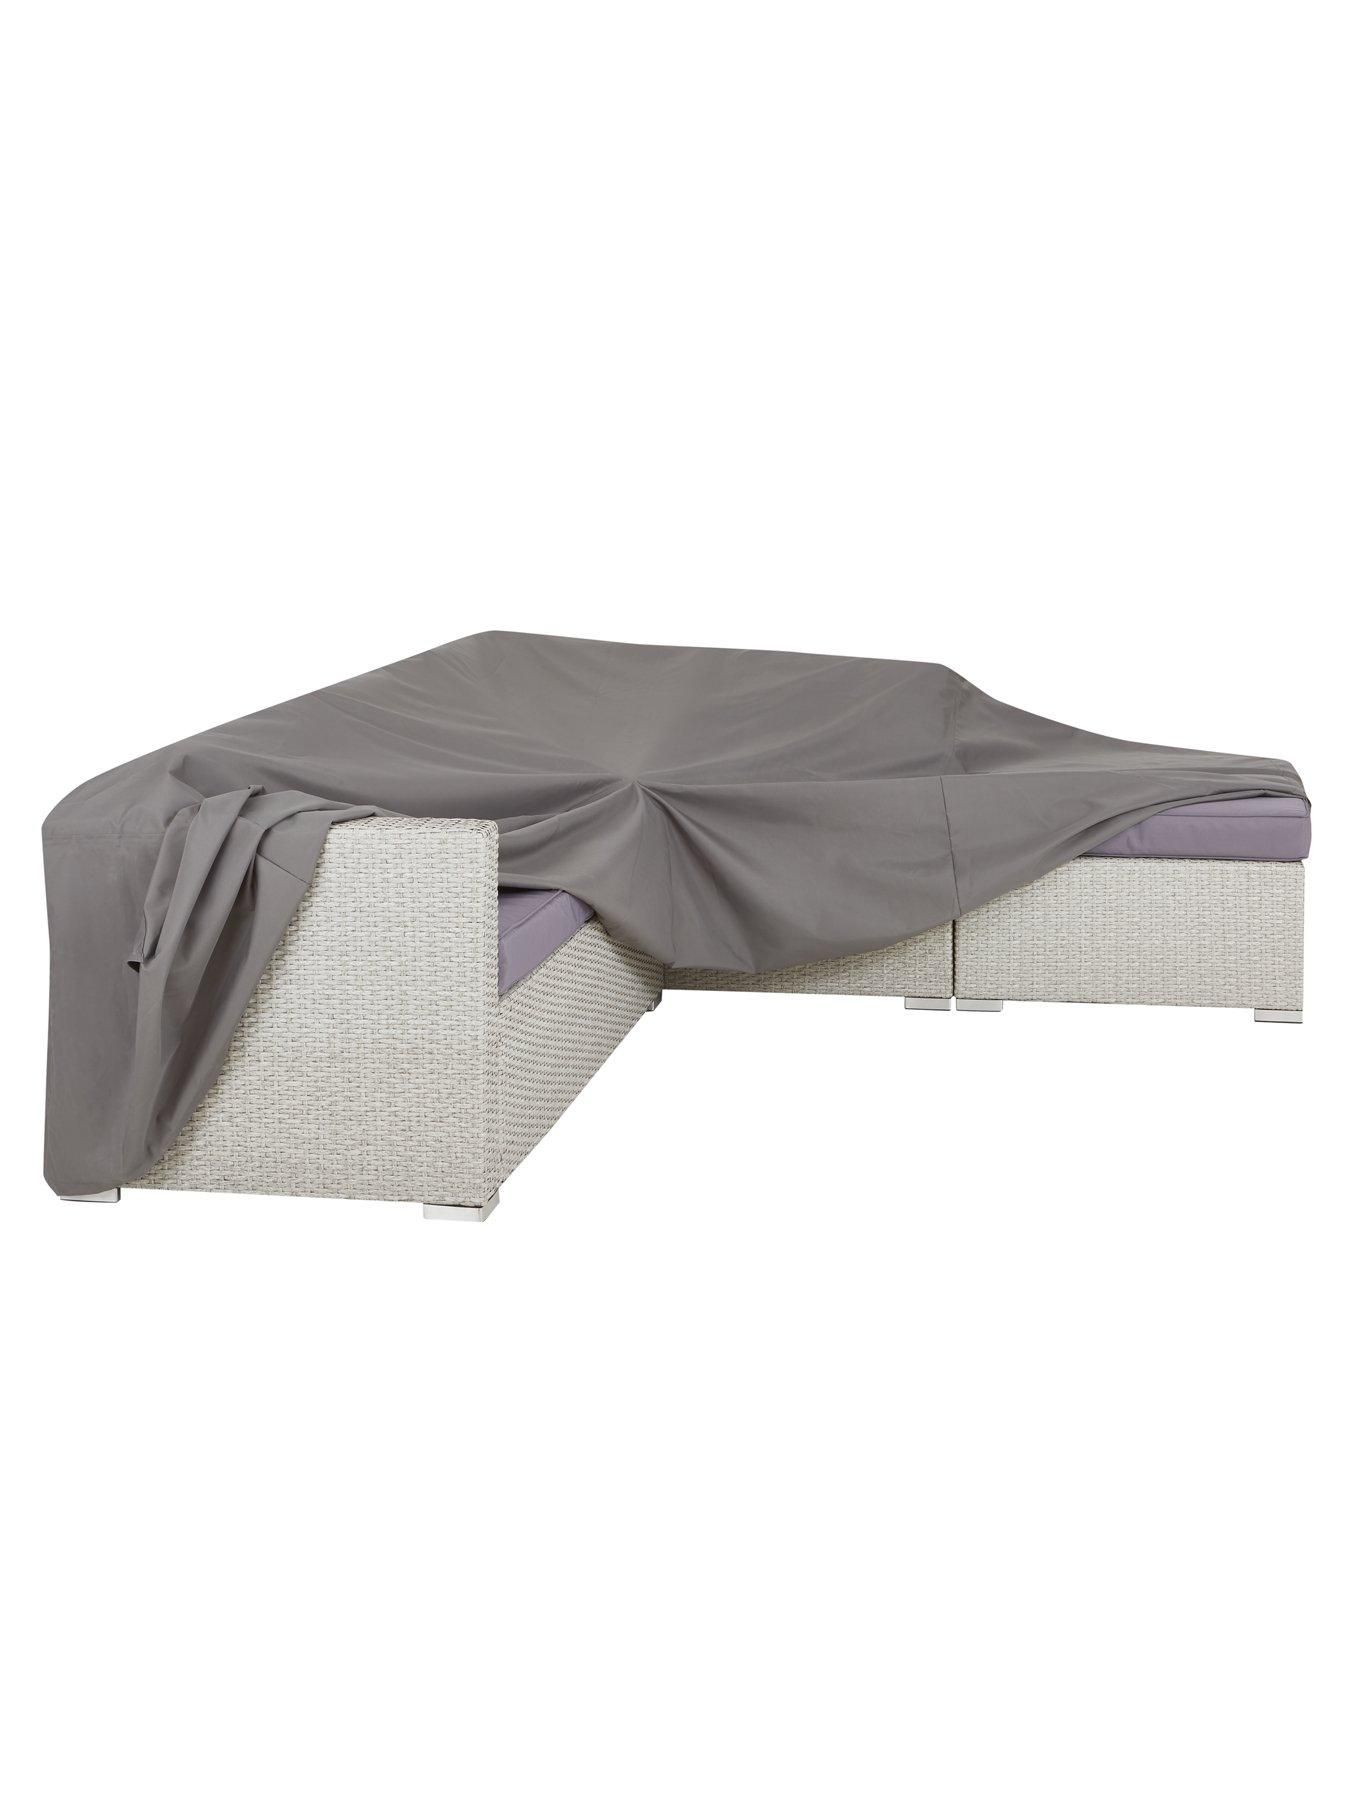 Corner Sofa Garden Furniture Cover Small Grey Corner Sofa Garden Furniture Corner Sofa Garden Garden Furniture